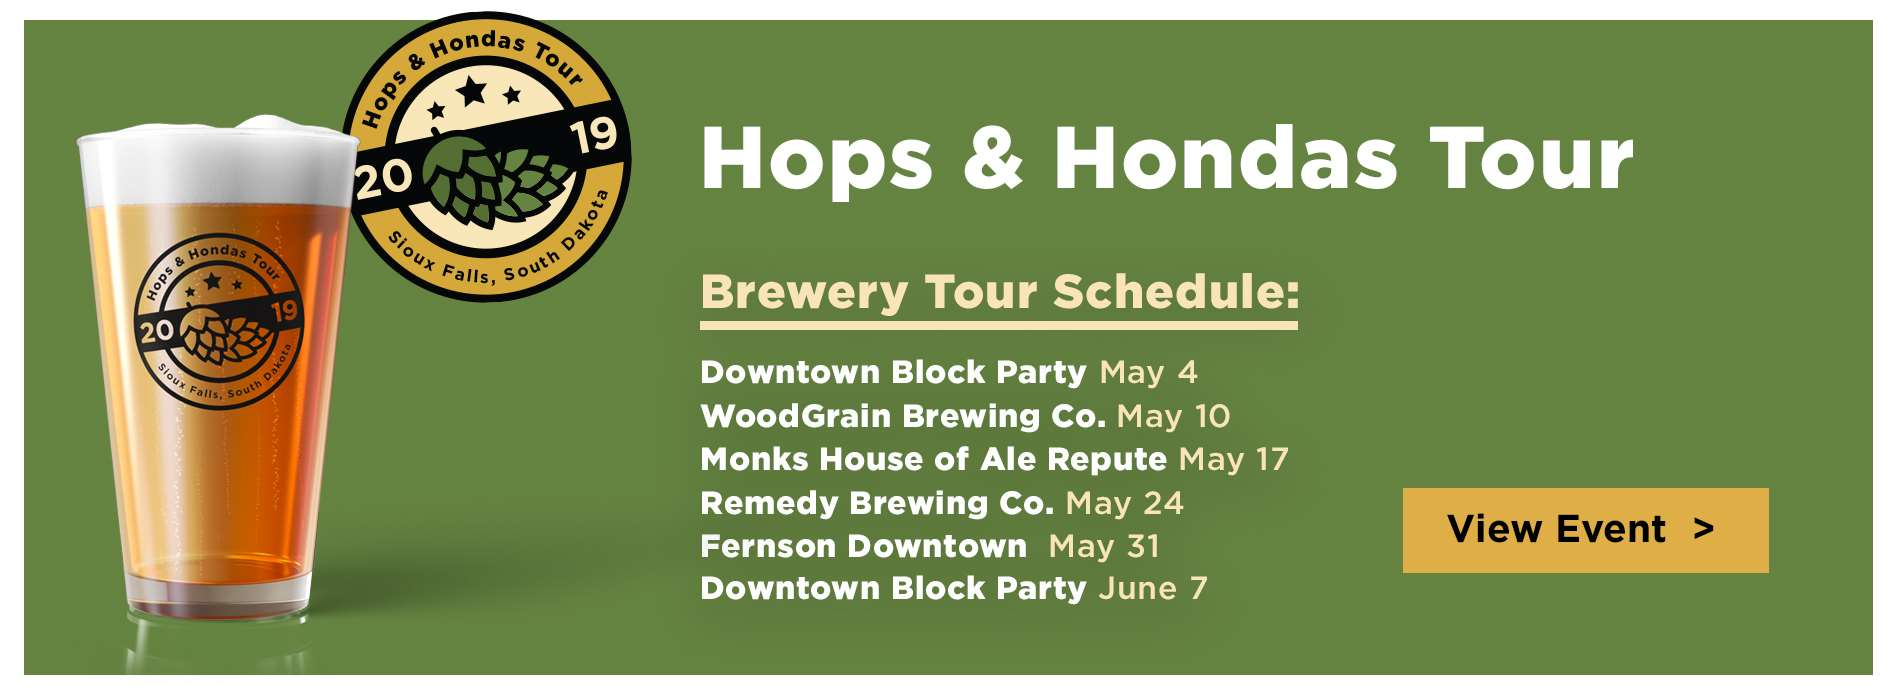 Honda - Hops & Hondas - April 2019